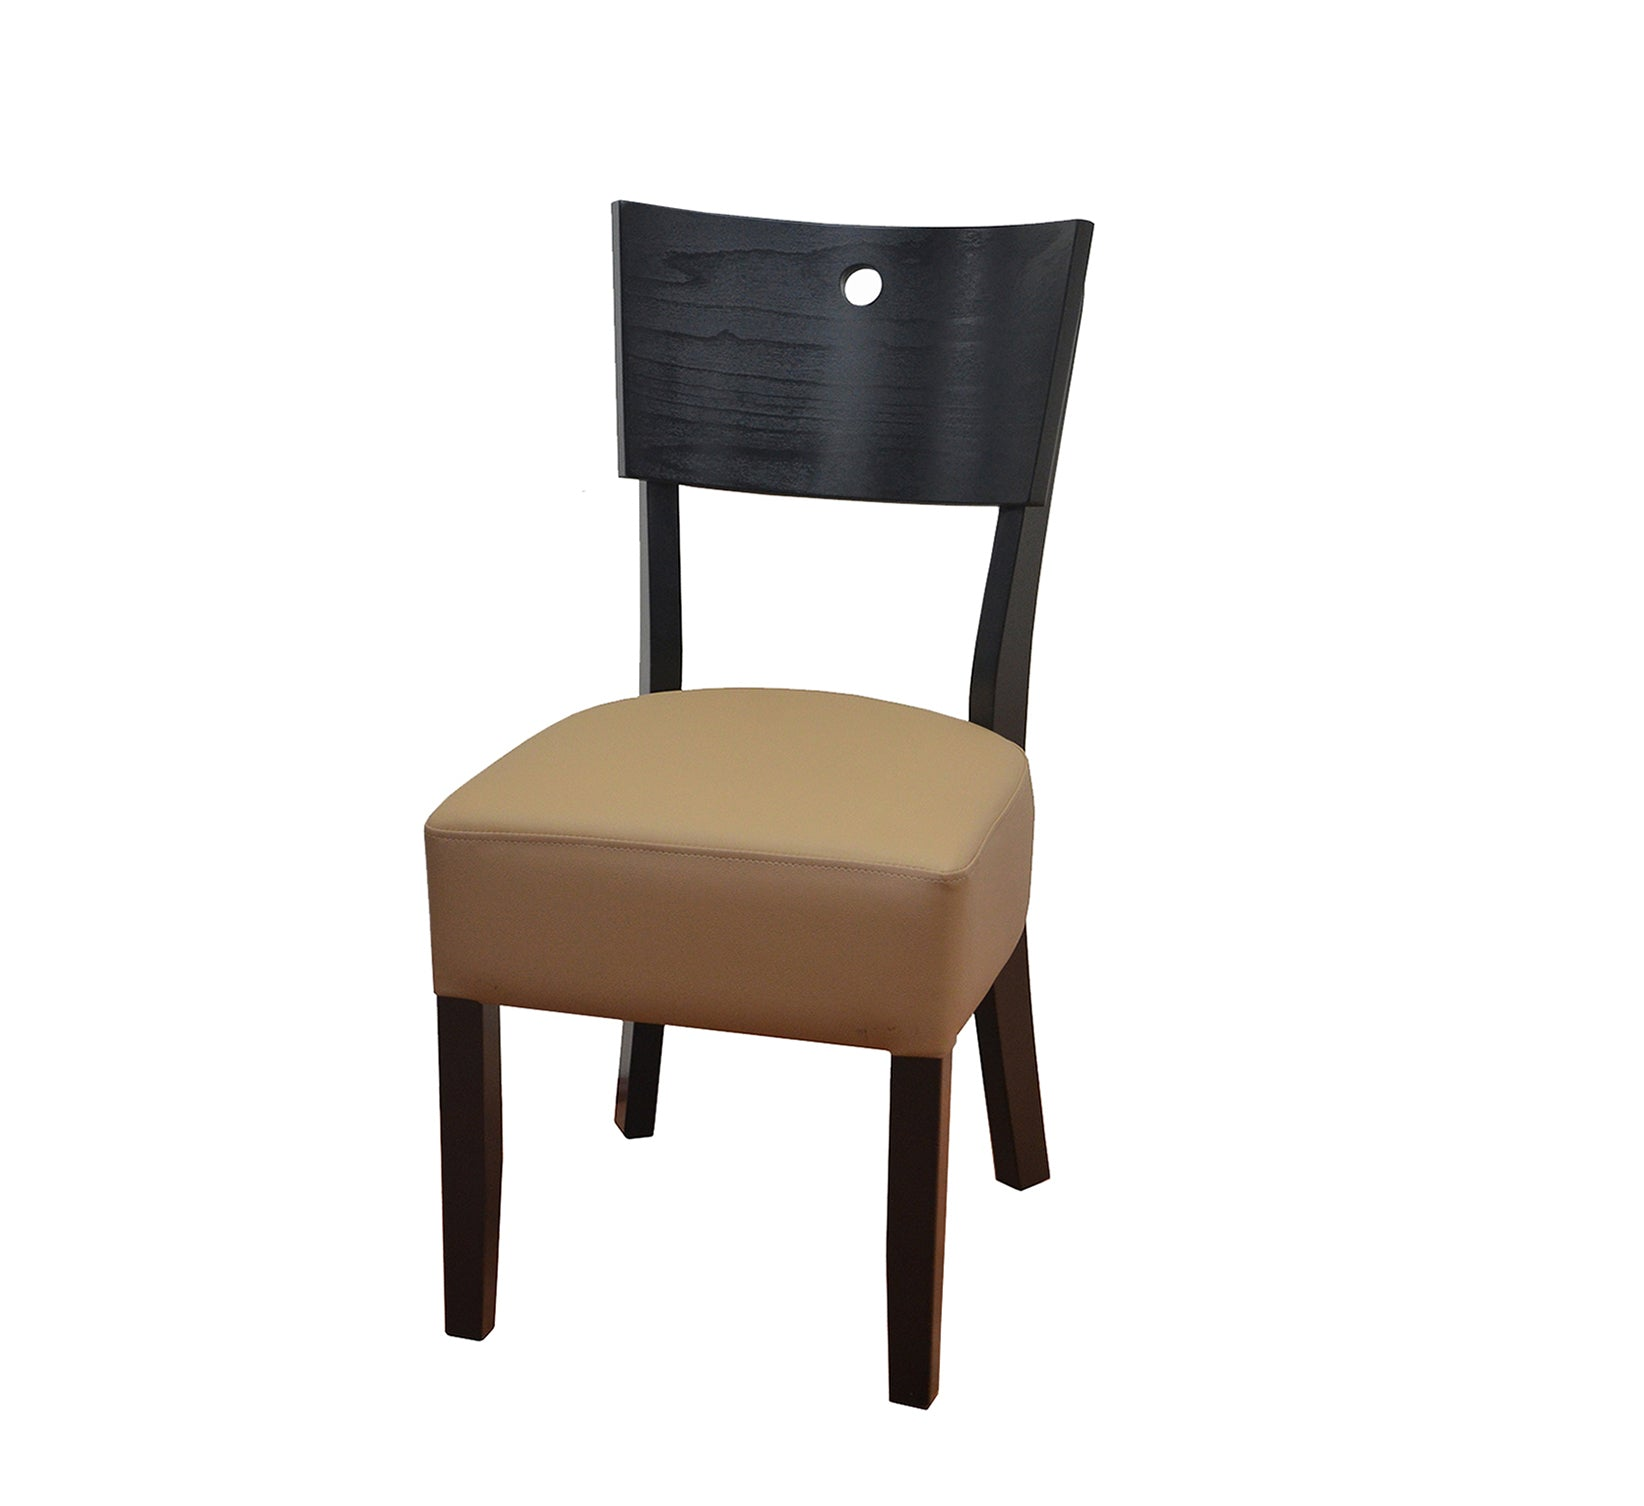 243 Black Designer Restaurant Chair – dhcfurnitureonline